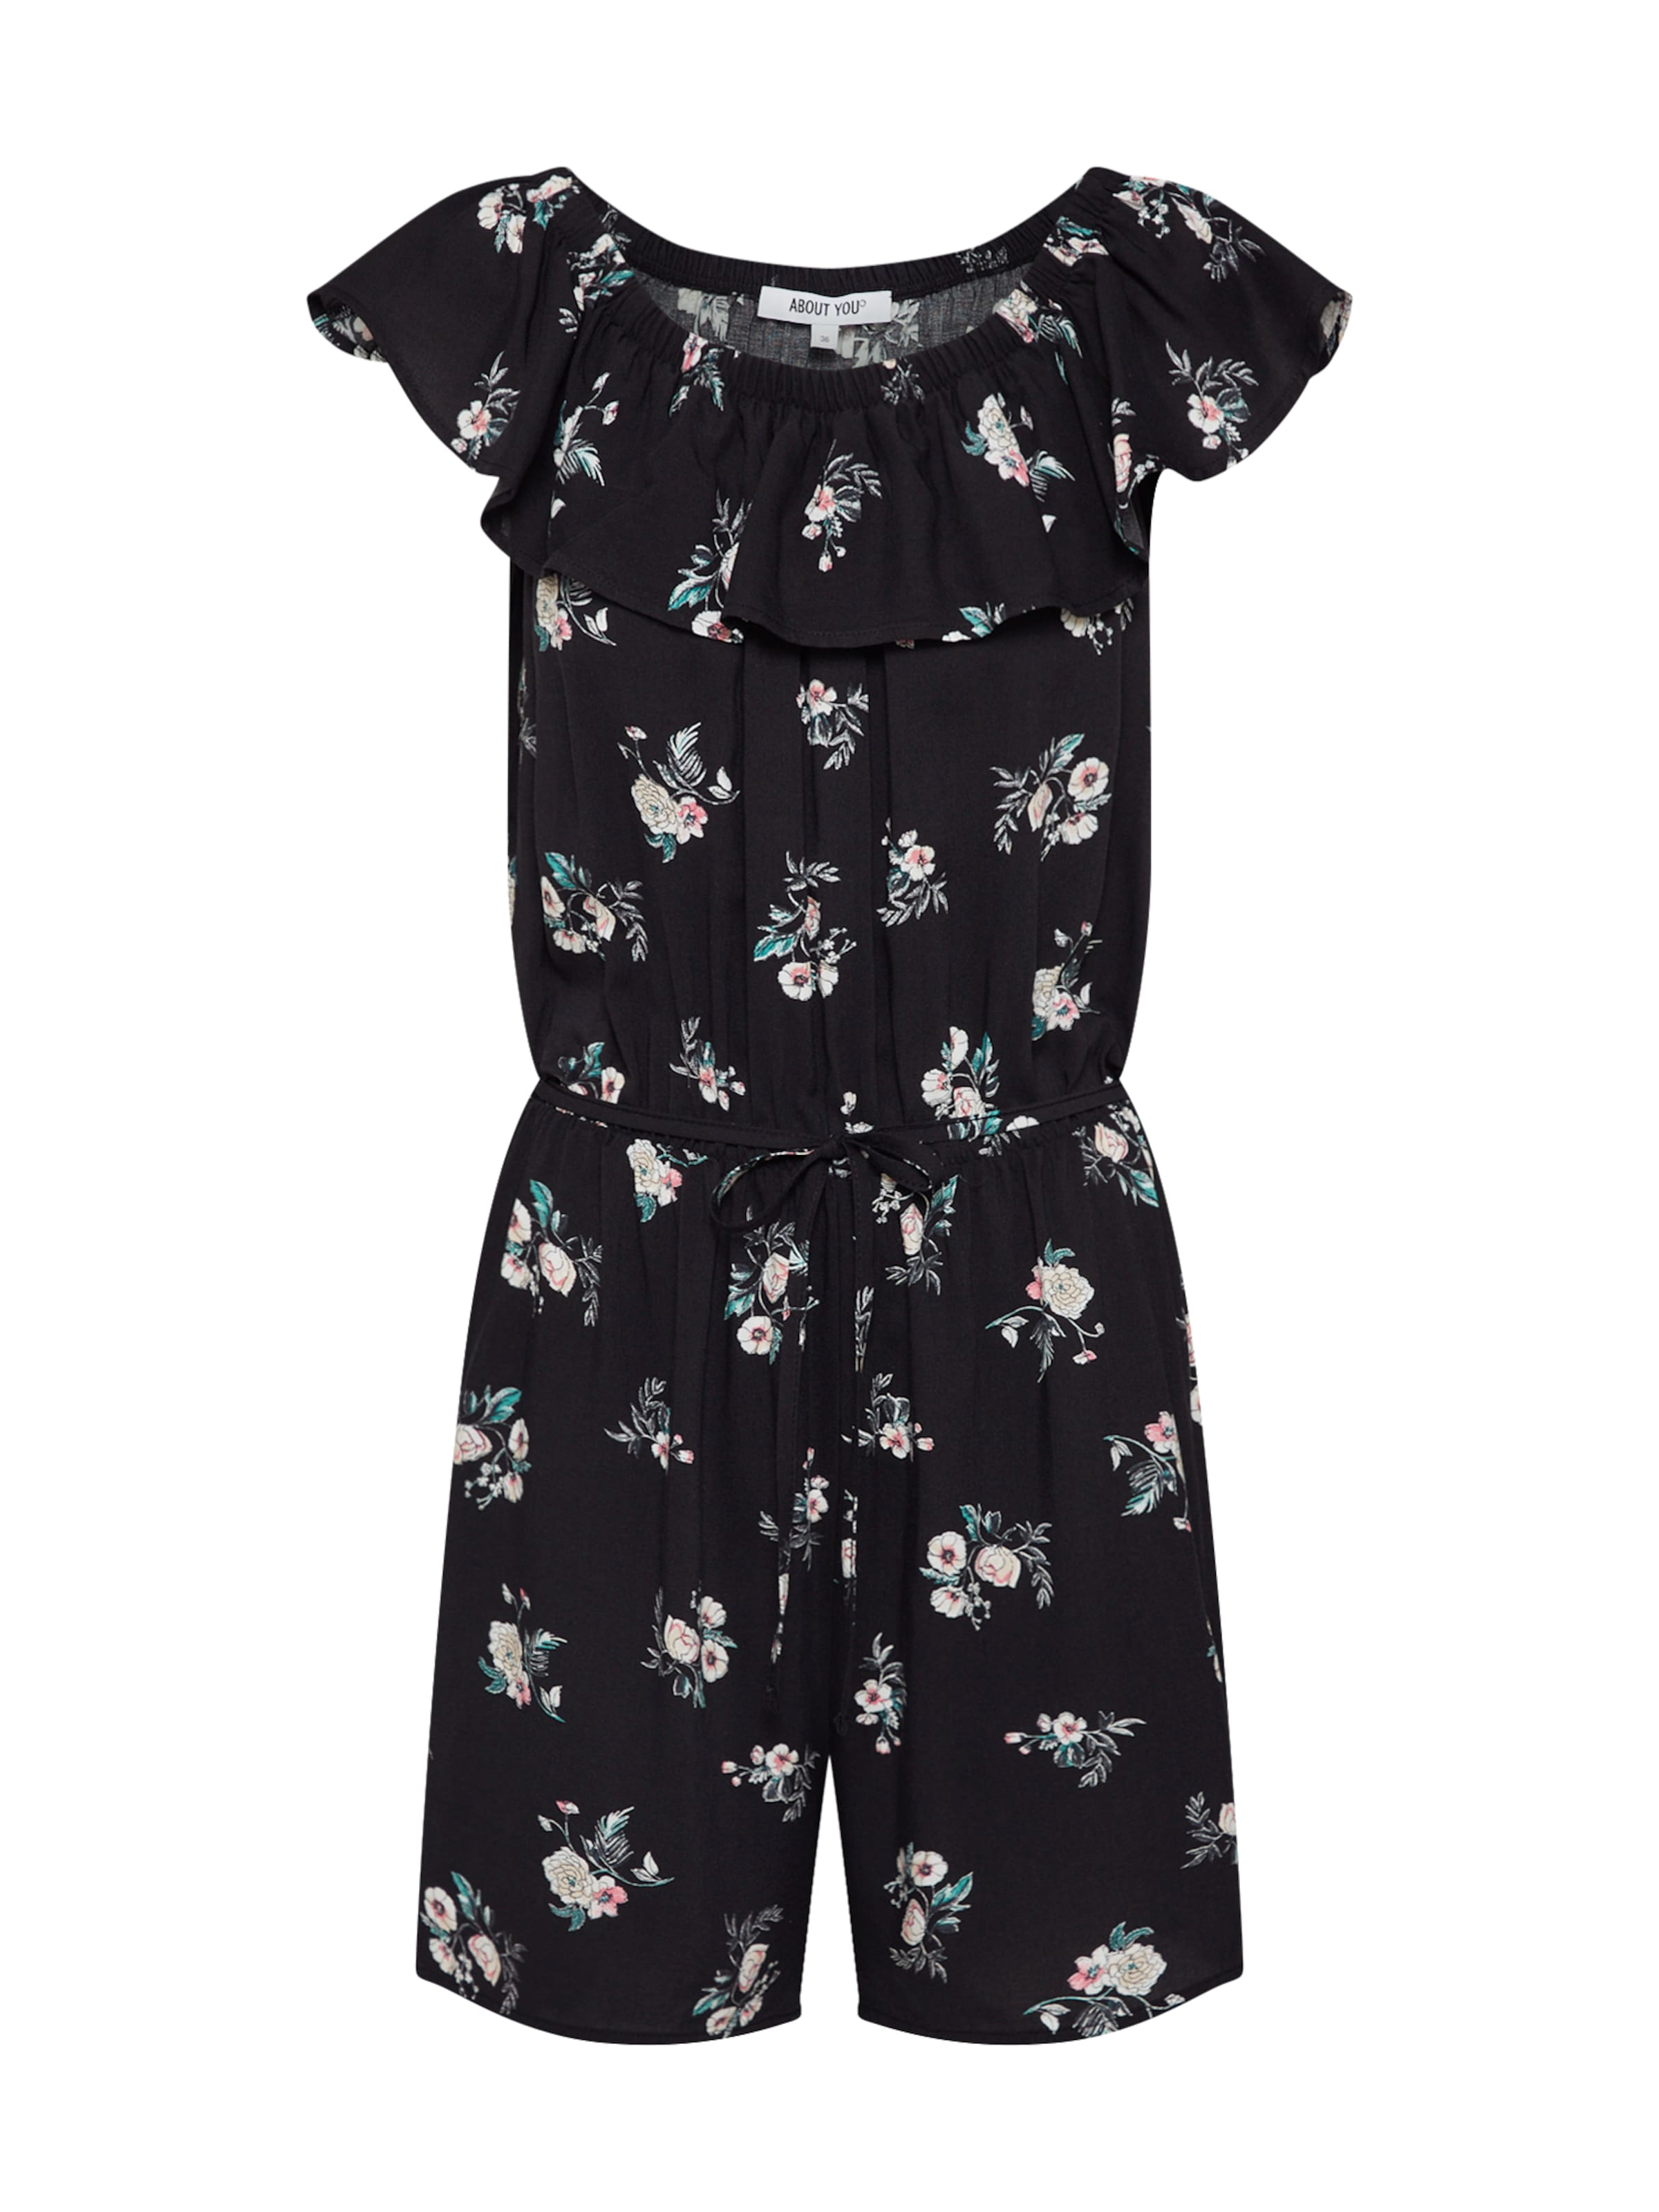 You Overalls About In CremeSchwarz 'hanni' lK1cT3FJ